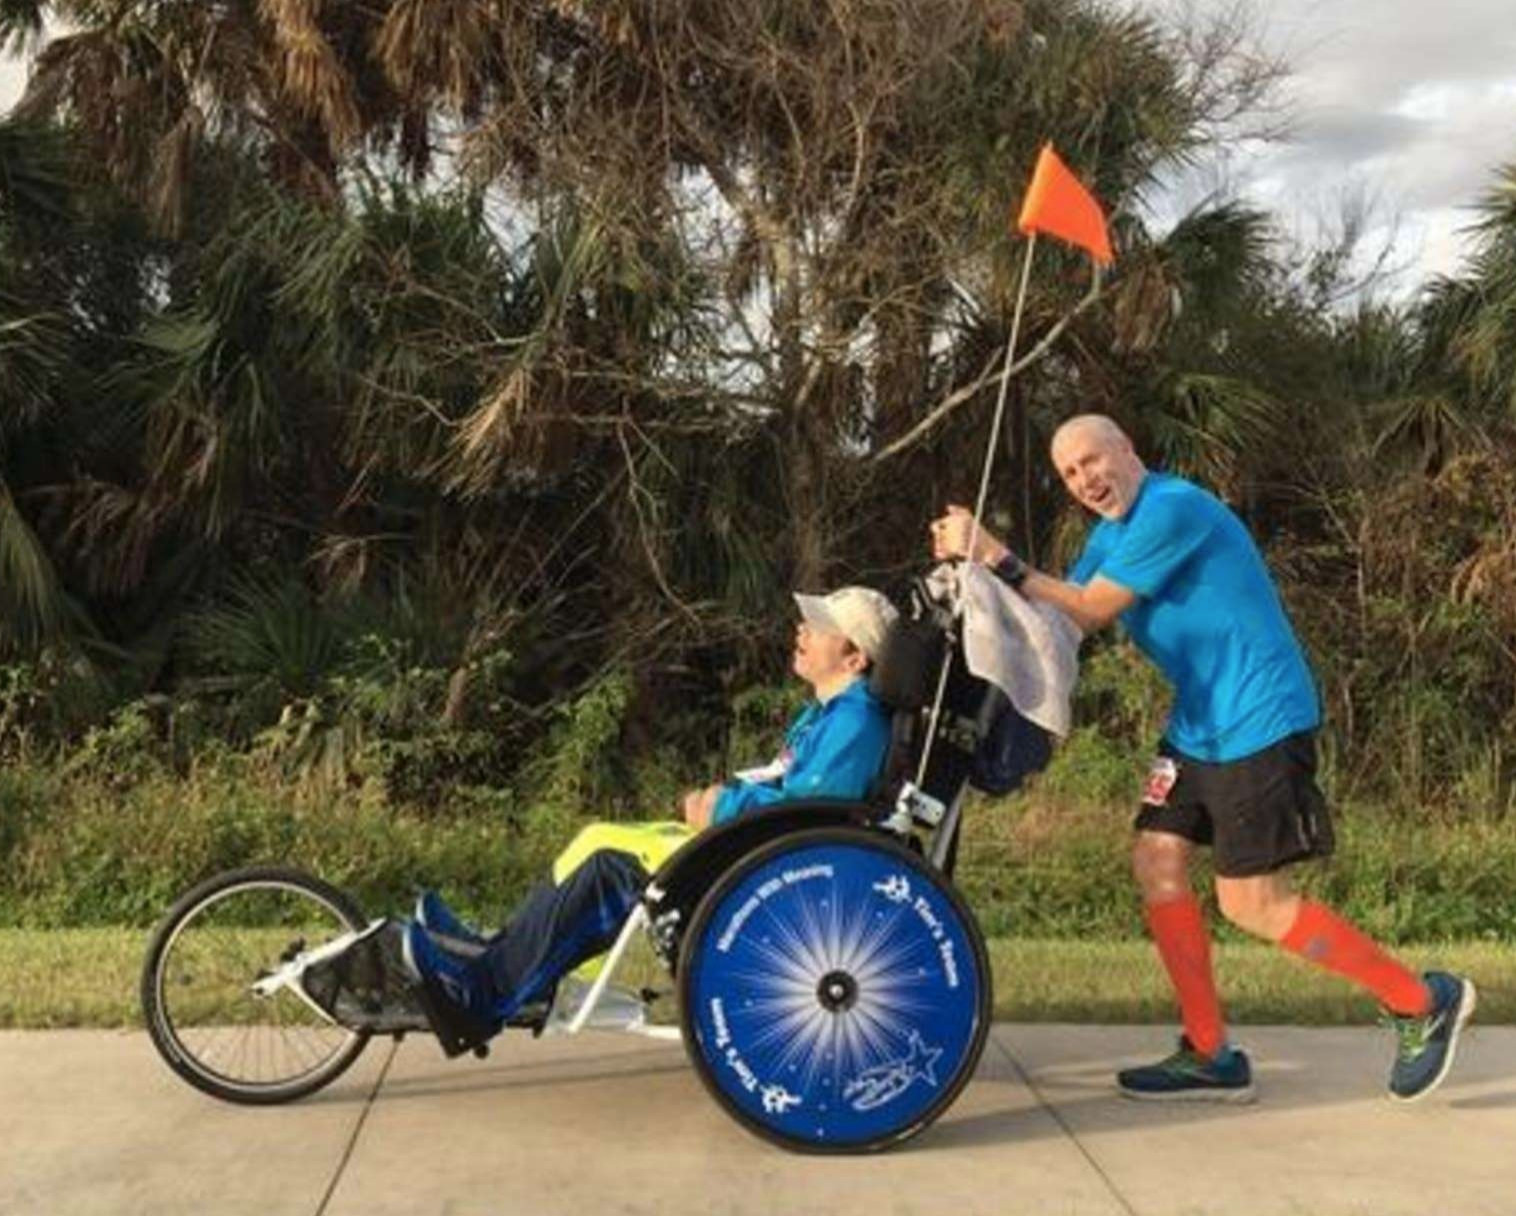 Peter Kline has completed 45 marathons pushing young people with disabilities